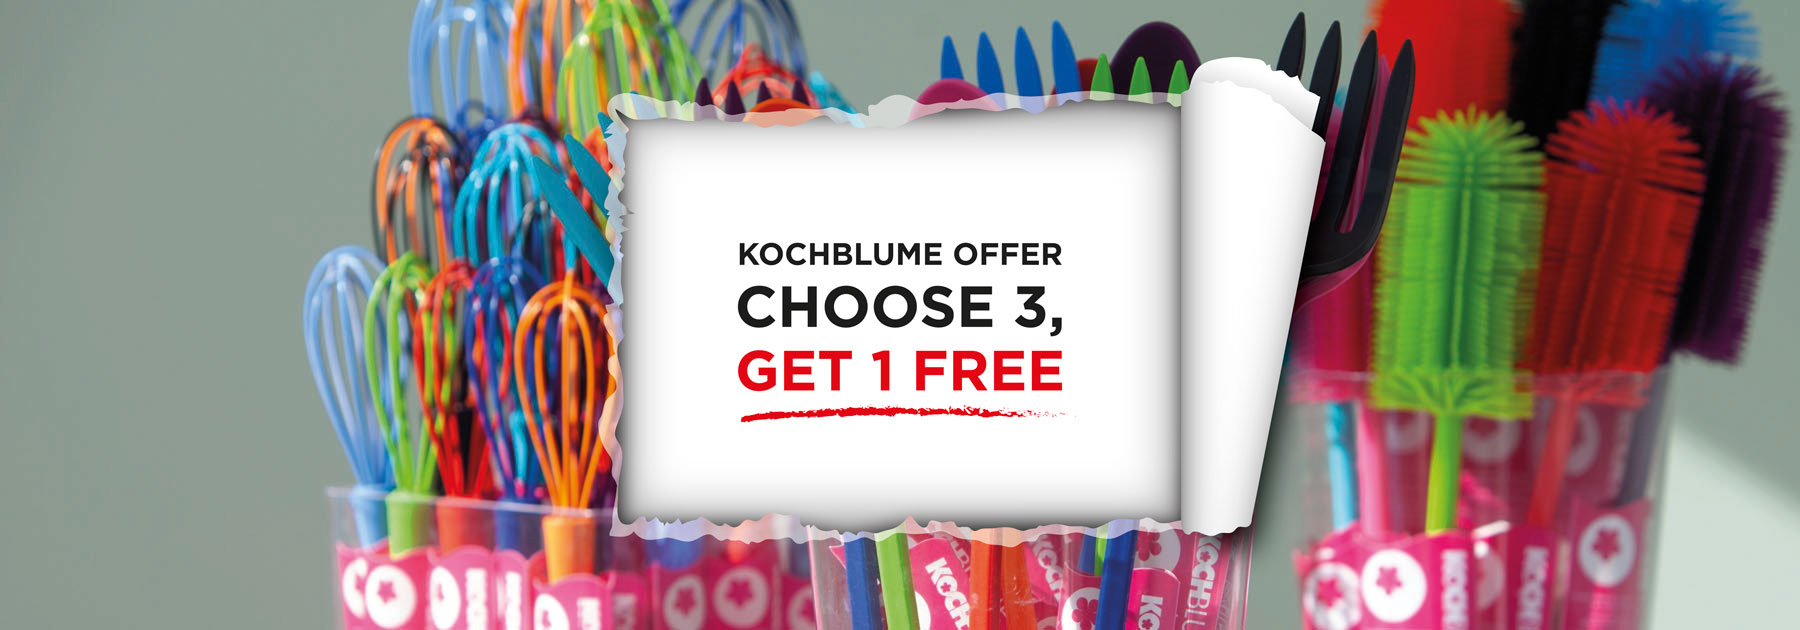 kochblume, range, silicone, tools, cookware, cleaning